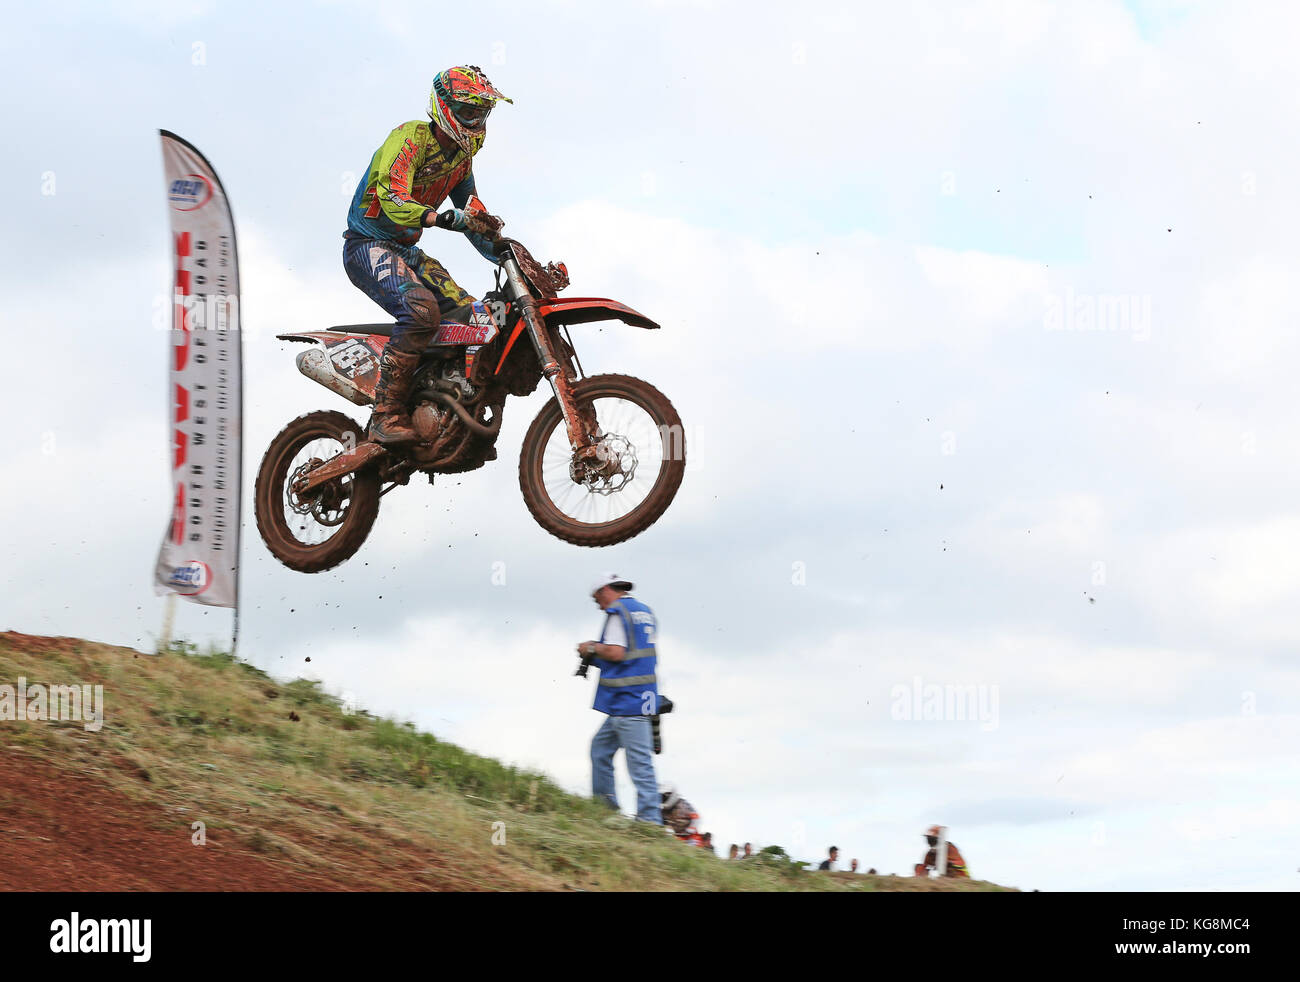 Motocross bike Jumping with photographer in the background - Stock Image